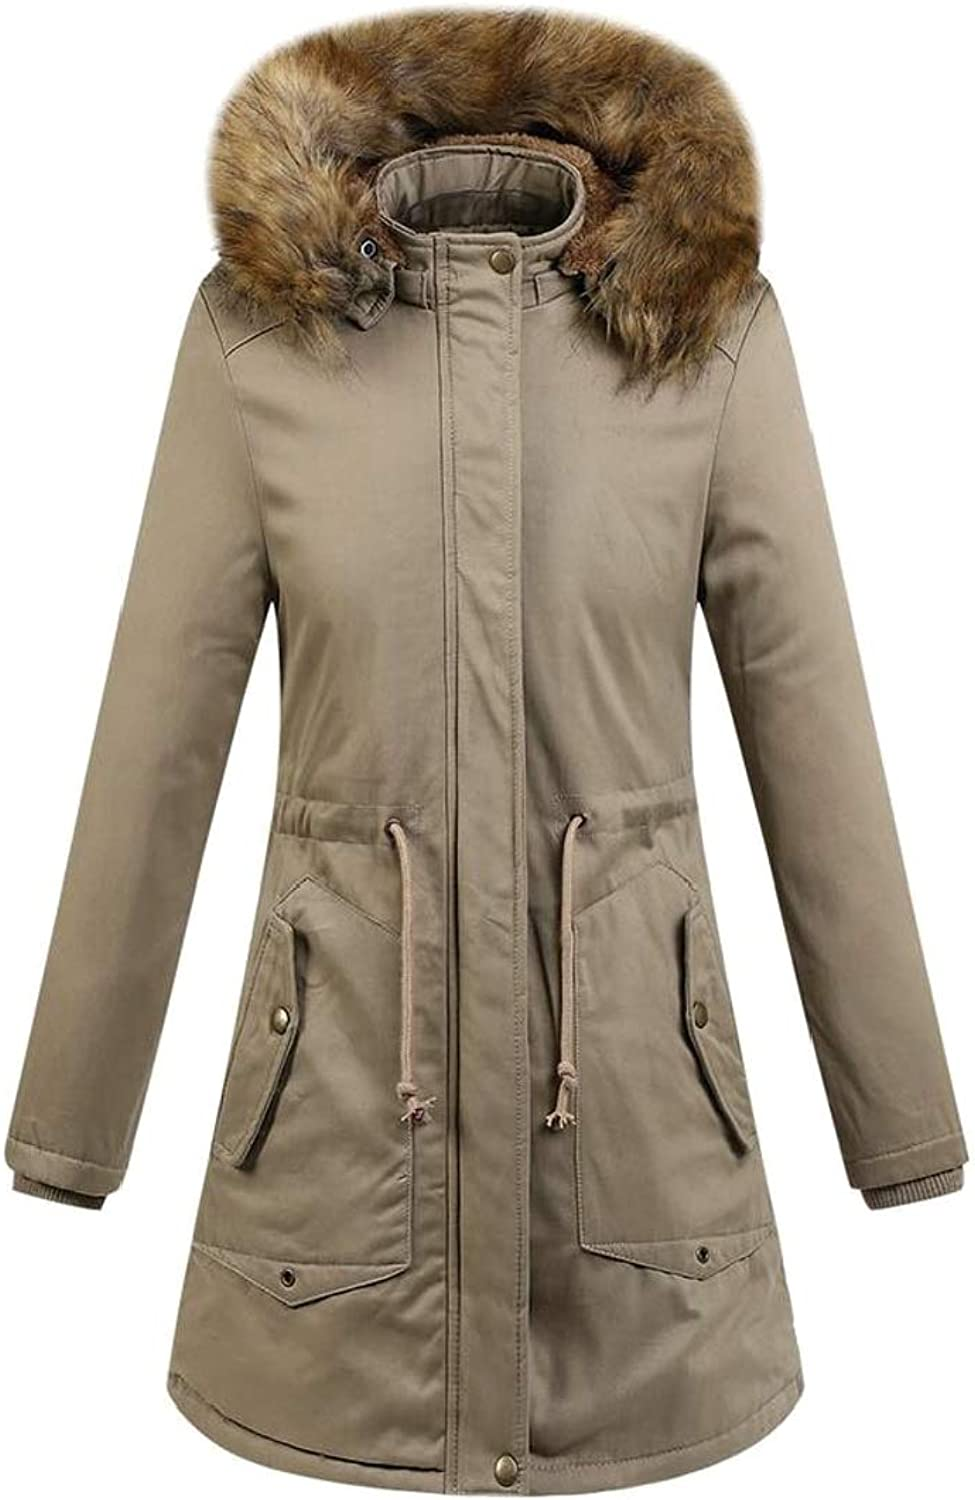 LEISHOP Women's Jacket Winter Warm Thickened Zipped Button Down Parka Coat